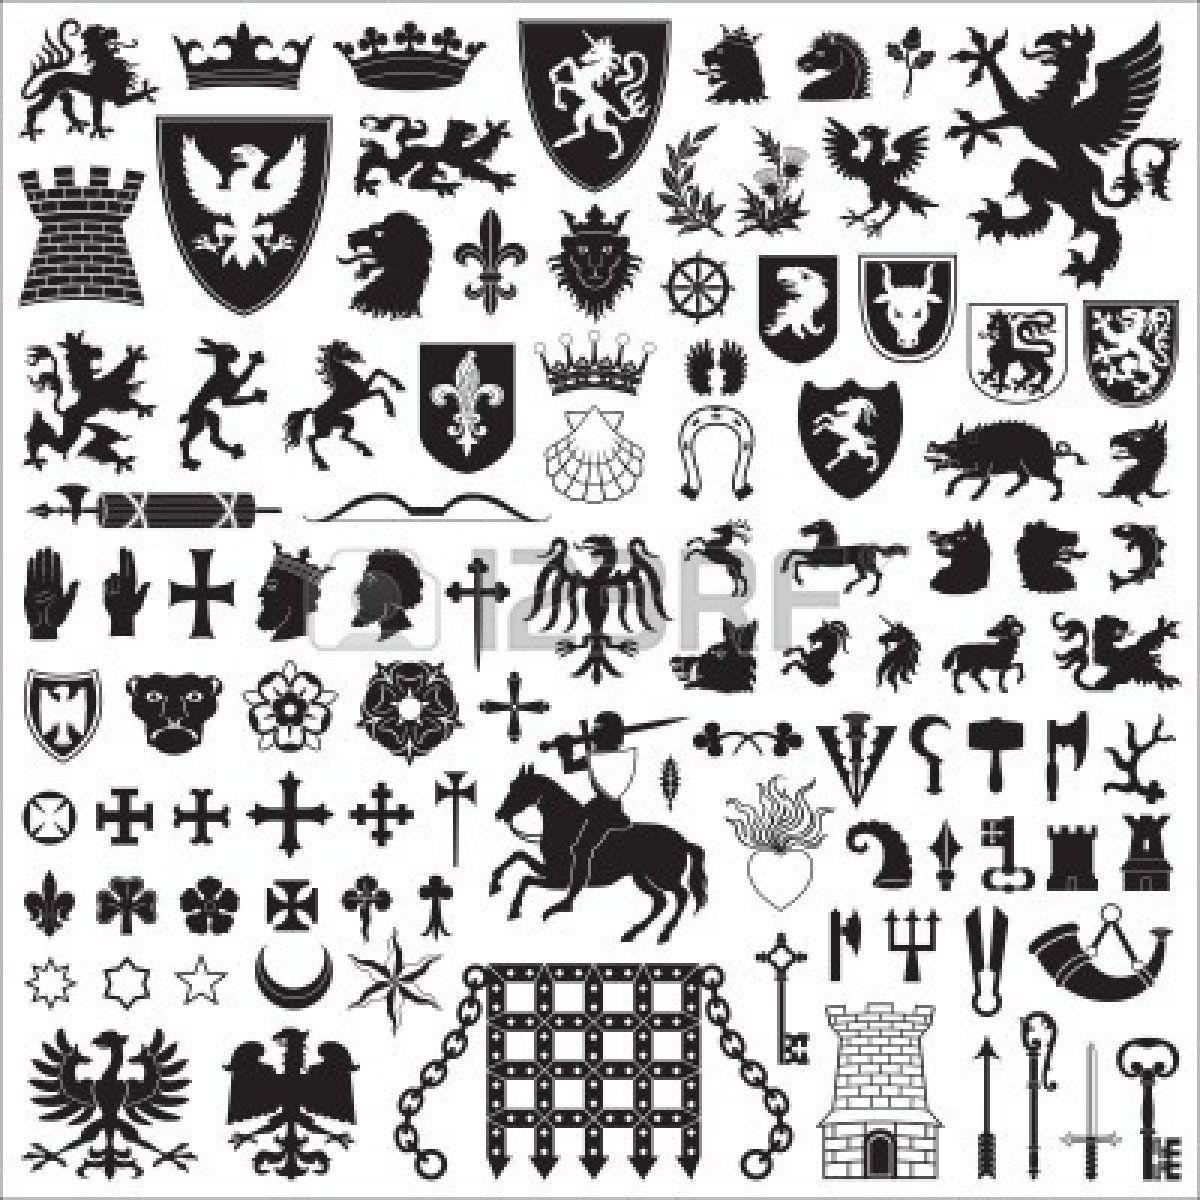 Heraldic symbols and elements top left cool hound but wild boar heraldic symbols and elements top left cool hound but wild boar buycottarizona Gallery